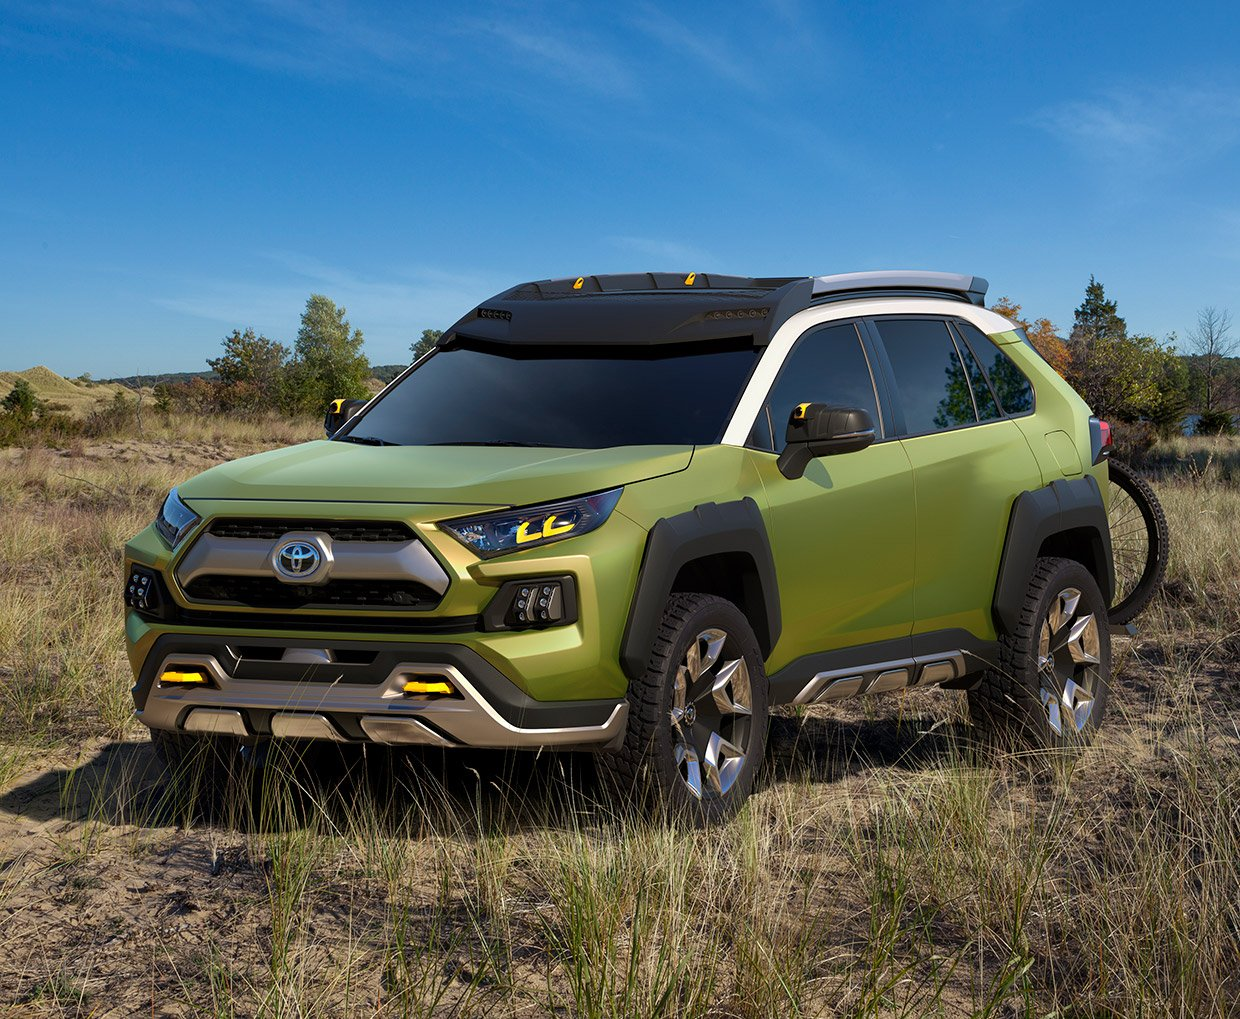 Toyota Says There's Room for a Small Off-roader in Their Lineup